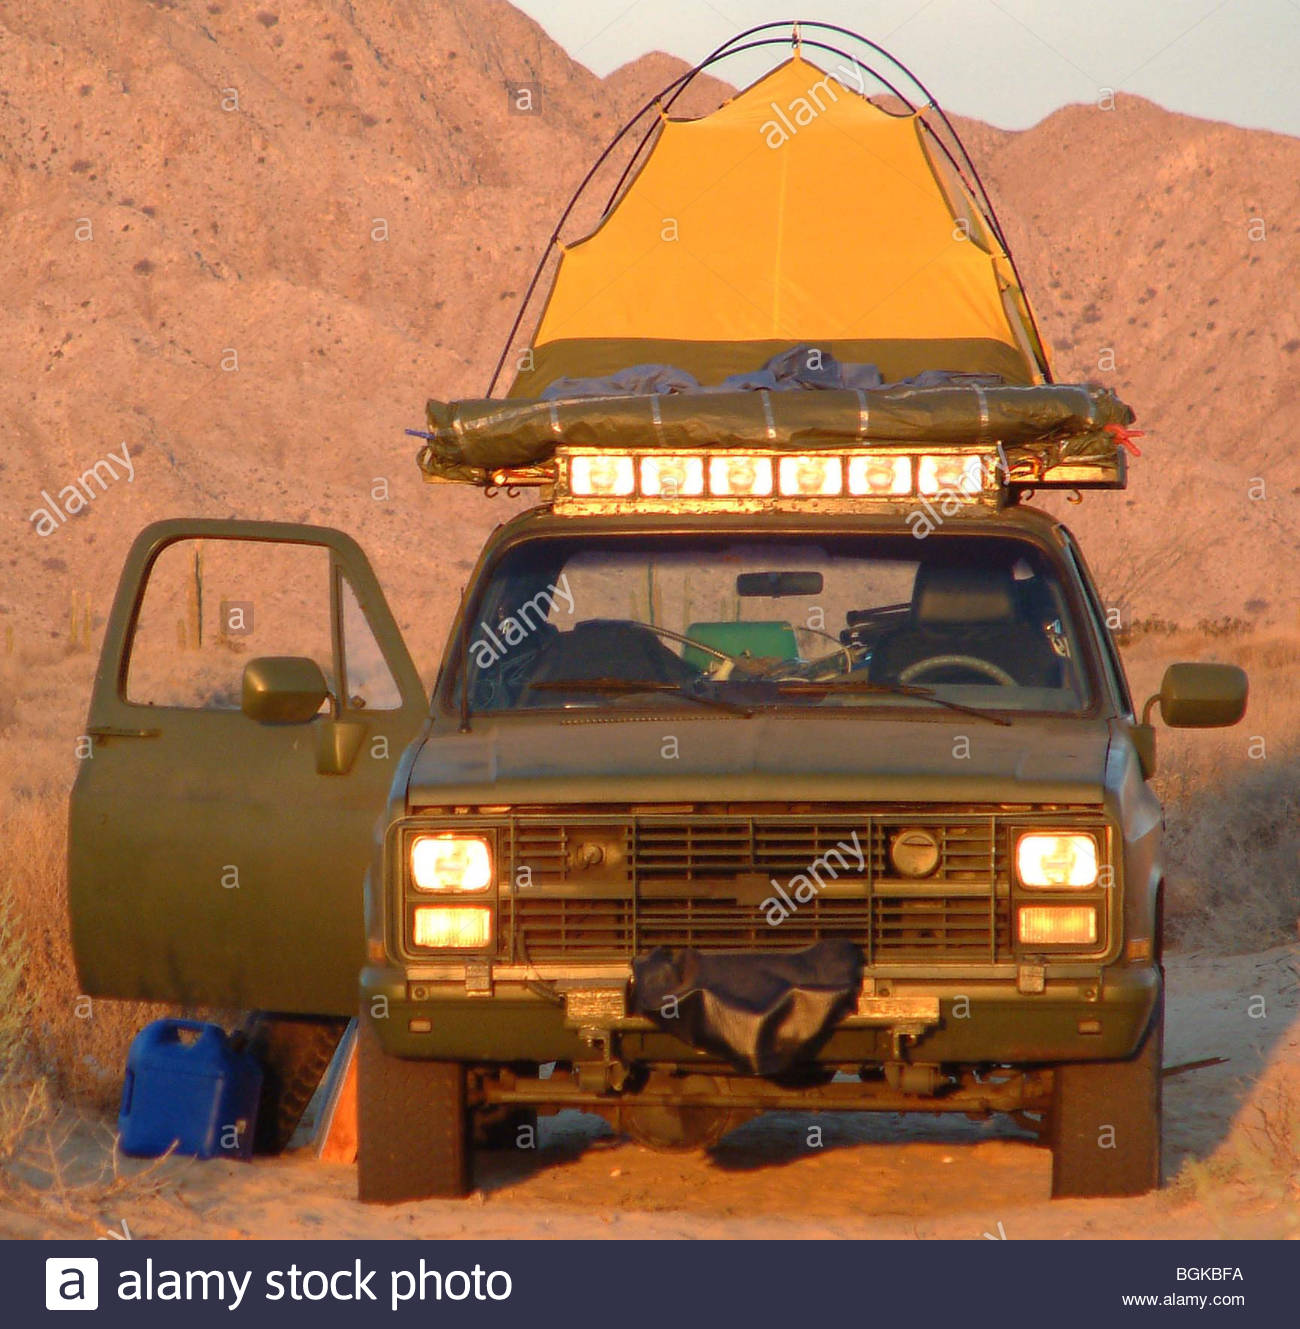 Chevy CUCV military Utility truck Chevrolet 4x4 OD green sand desert roof tent tents GULF OF MEXICO & Chevy CUCV military Utility truck Chevrolet 4x4 OD green sand ...